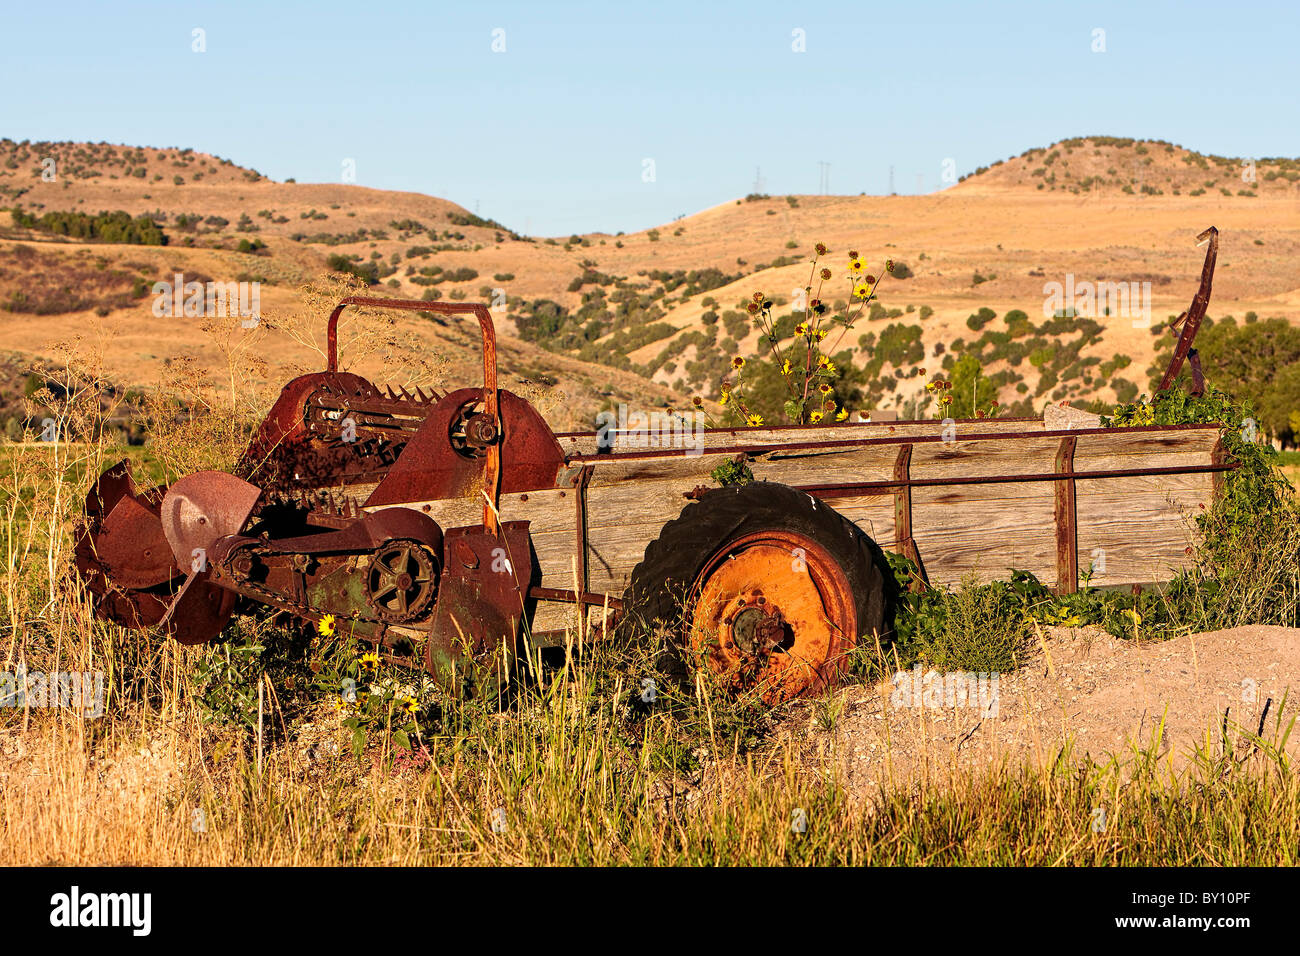 Abandoned, rusty, old manure spreader - Stock Image